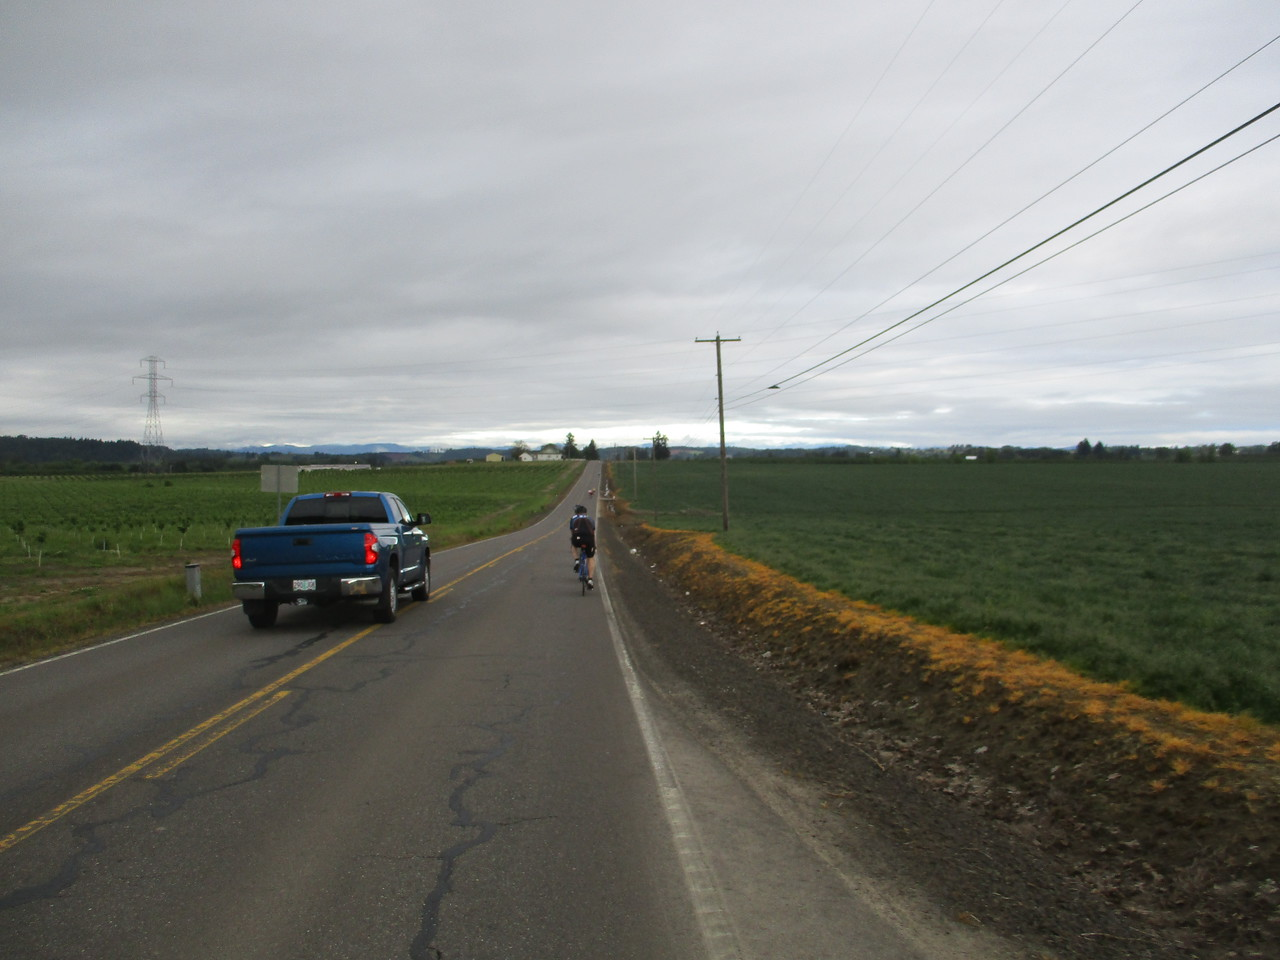 2017 Reach the Beach, Leg 1 (Newberg to Dayton)